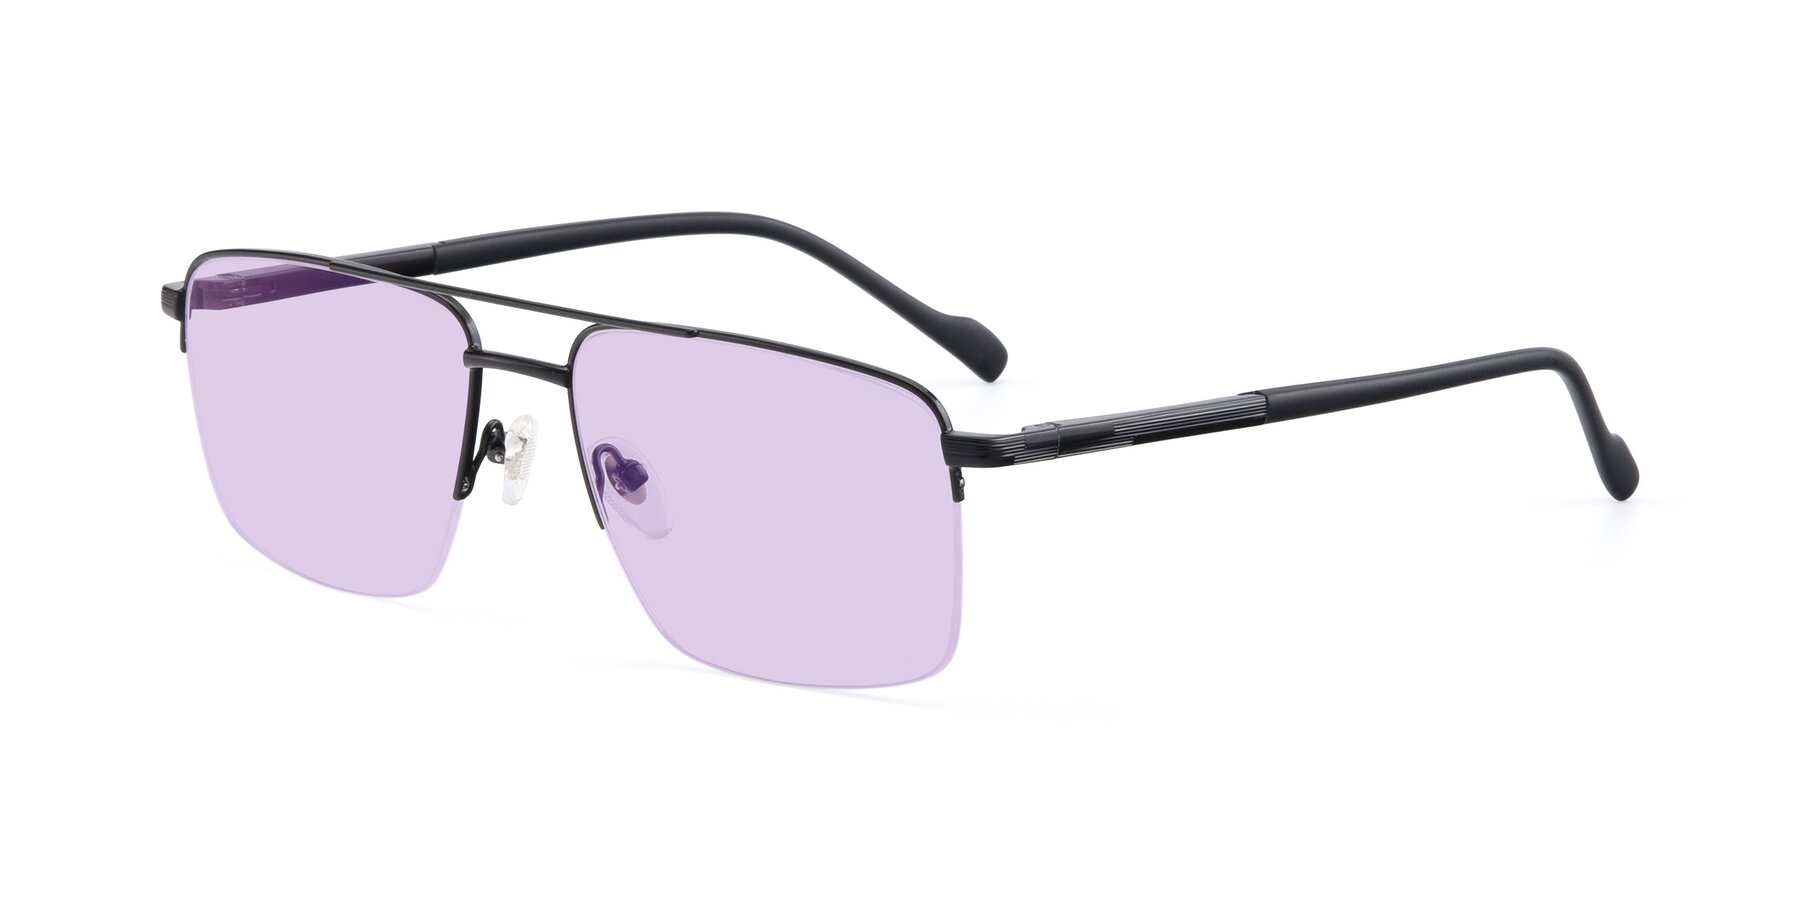 Angle of 19013 in Black with Light Purple Tinted Lenses